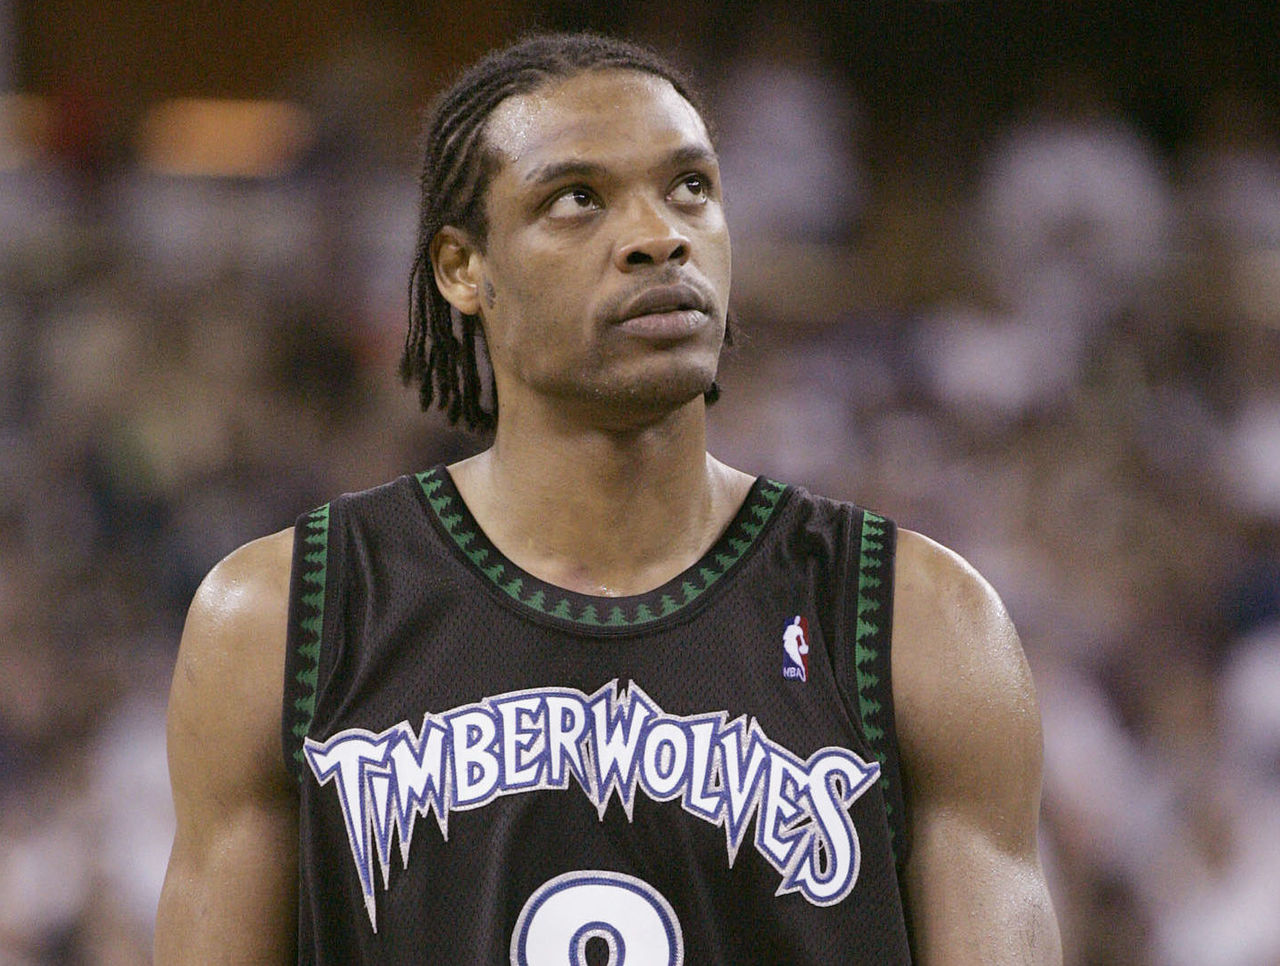 Latrell Sprewell says his spinner sneakers are returning in 2018